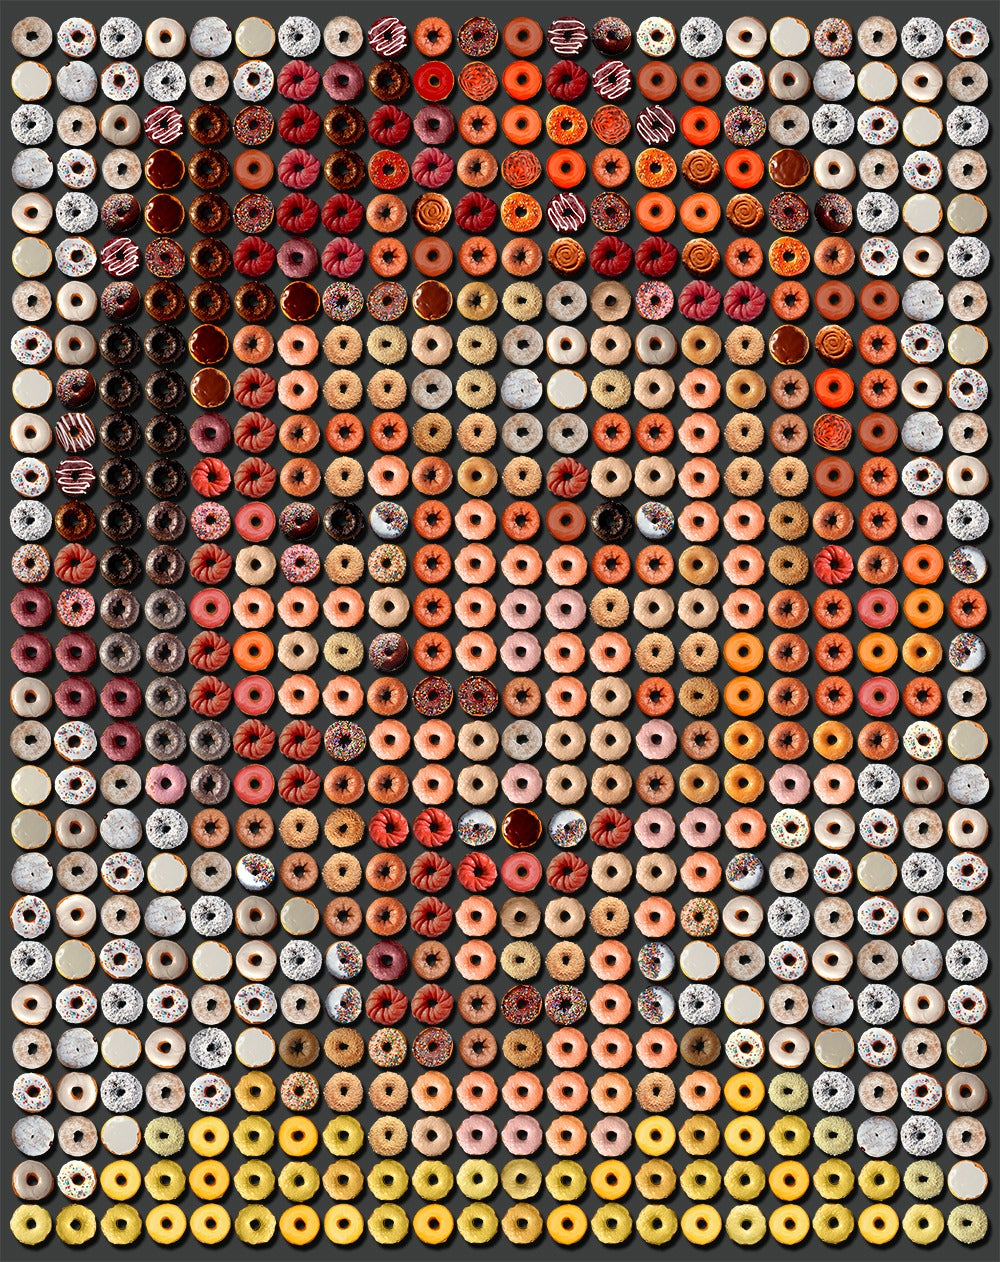 """Alfred E. Donuts"", one of a kind photographic arrangement of 616 donuts,"